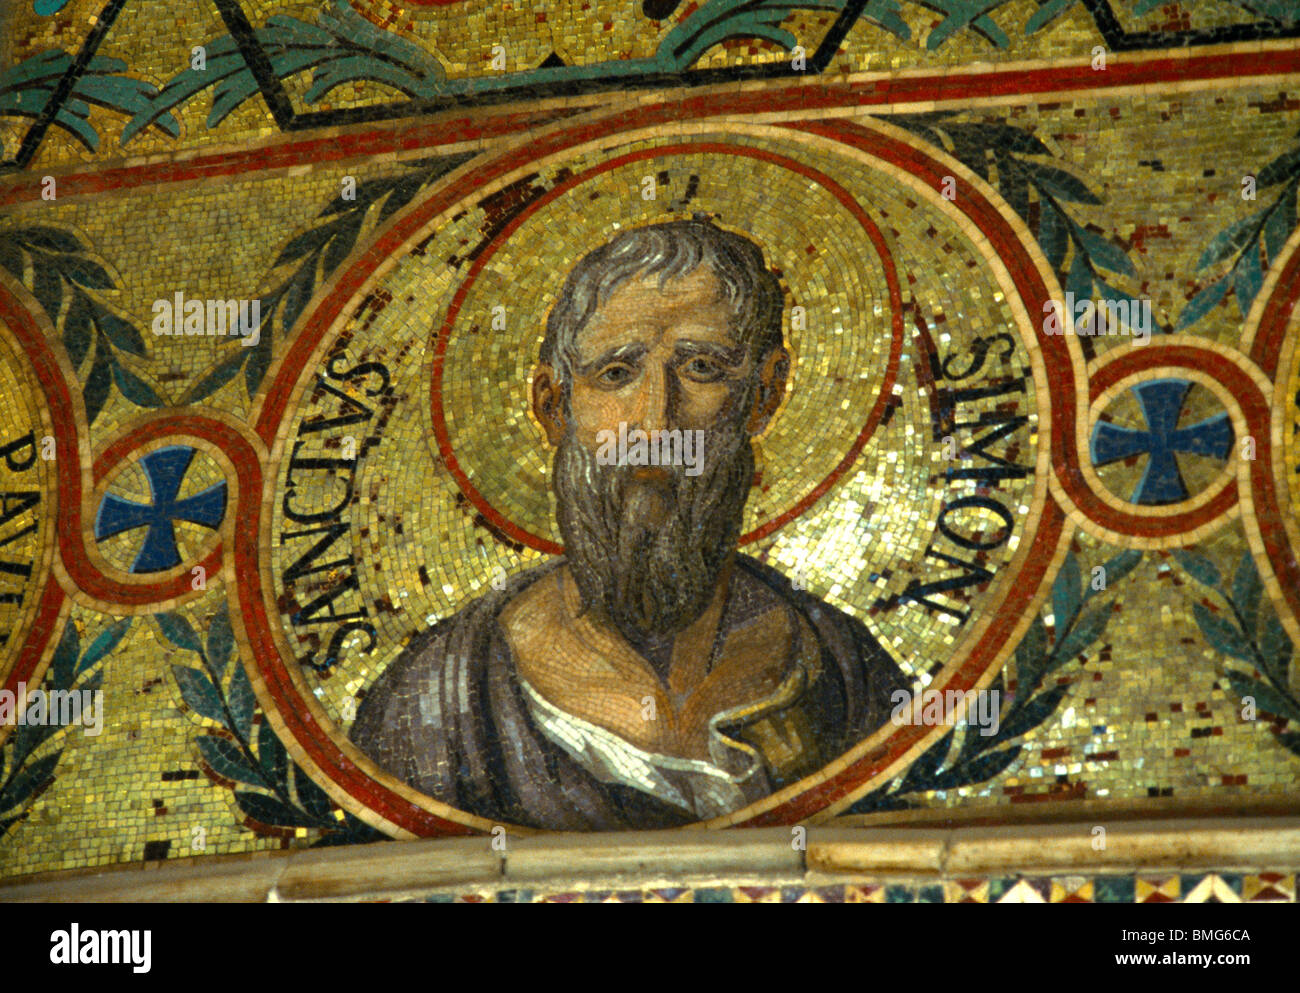 Palermo Sicily Italy The Palatine Chapel In The Norman Palace Mosaic Of Saint Simon - Stock Image